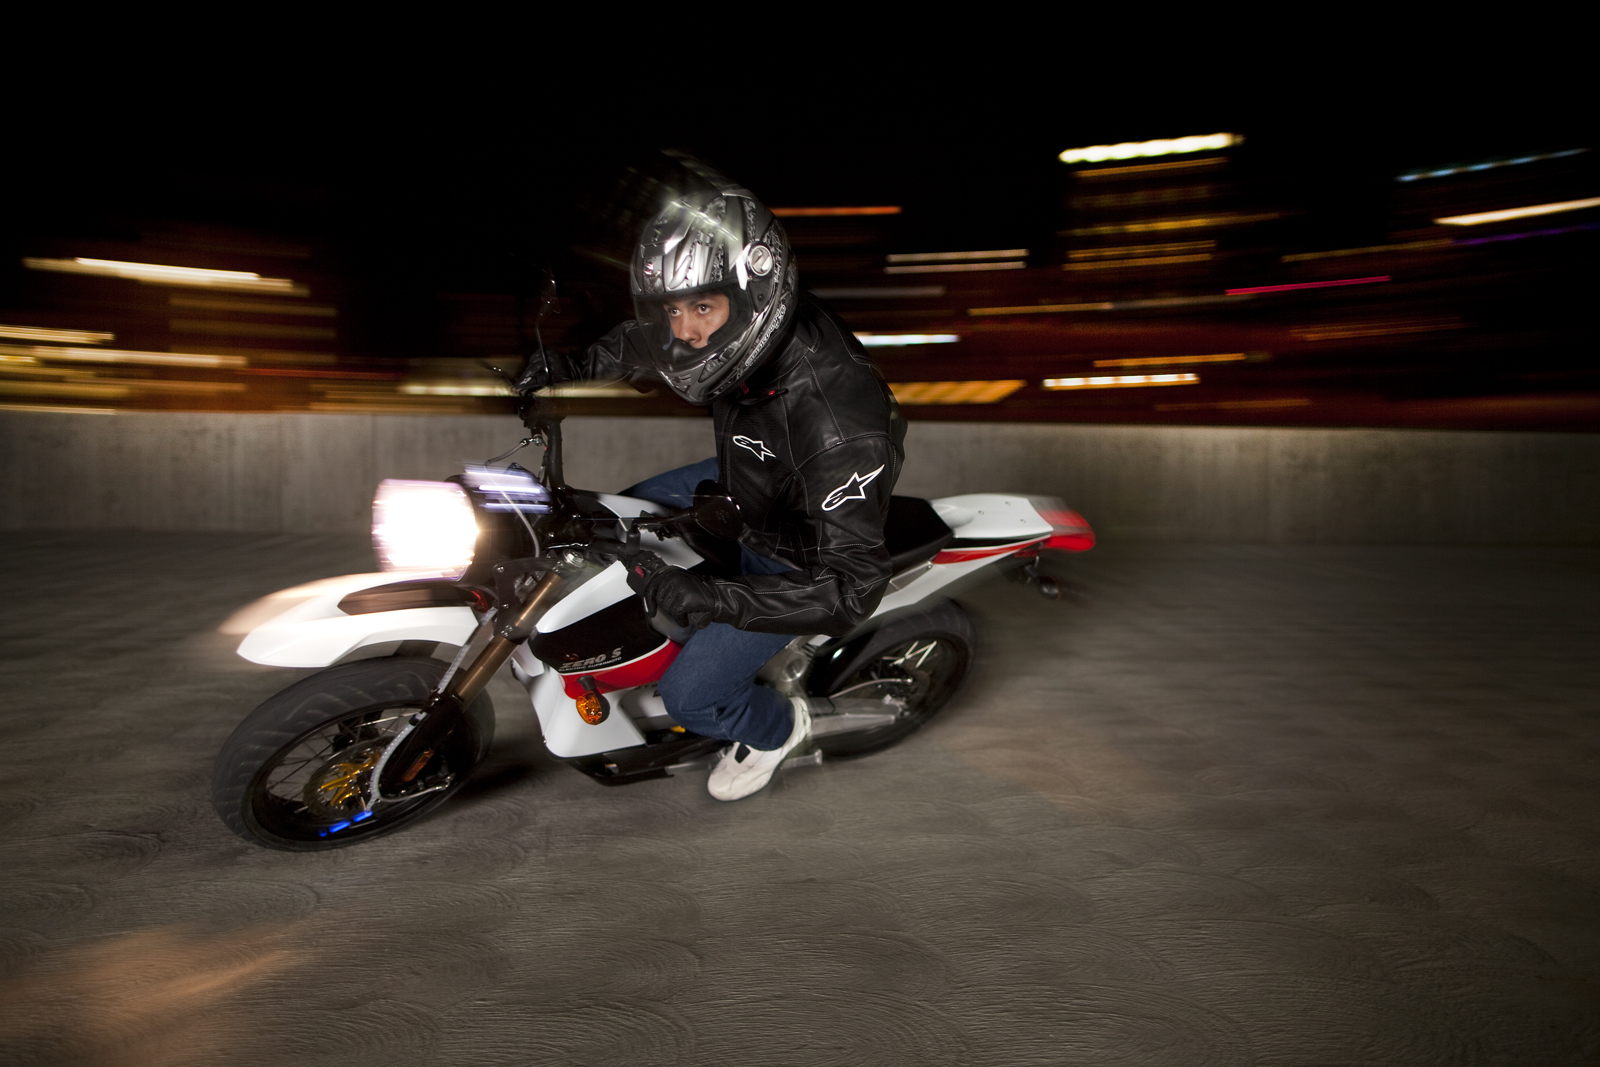 2010 Zero S Electric Motorcycle: Los Angeles - Garage Nightime